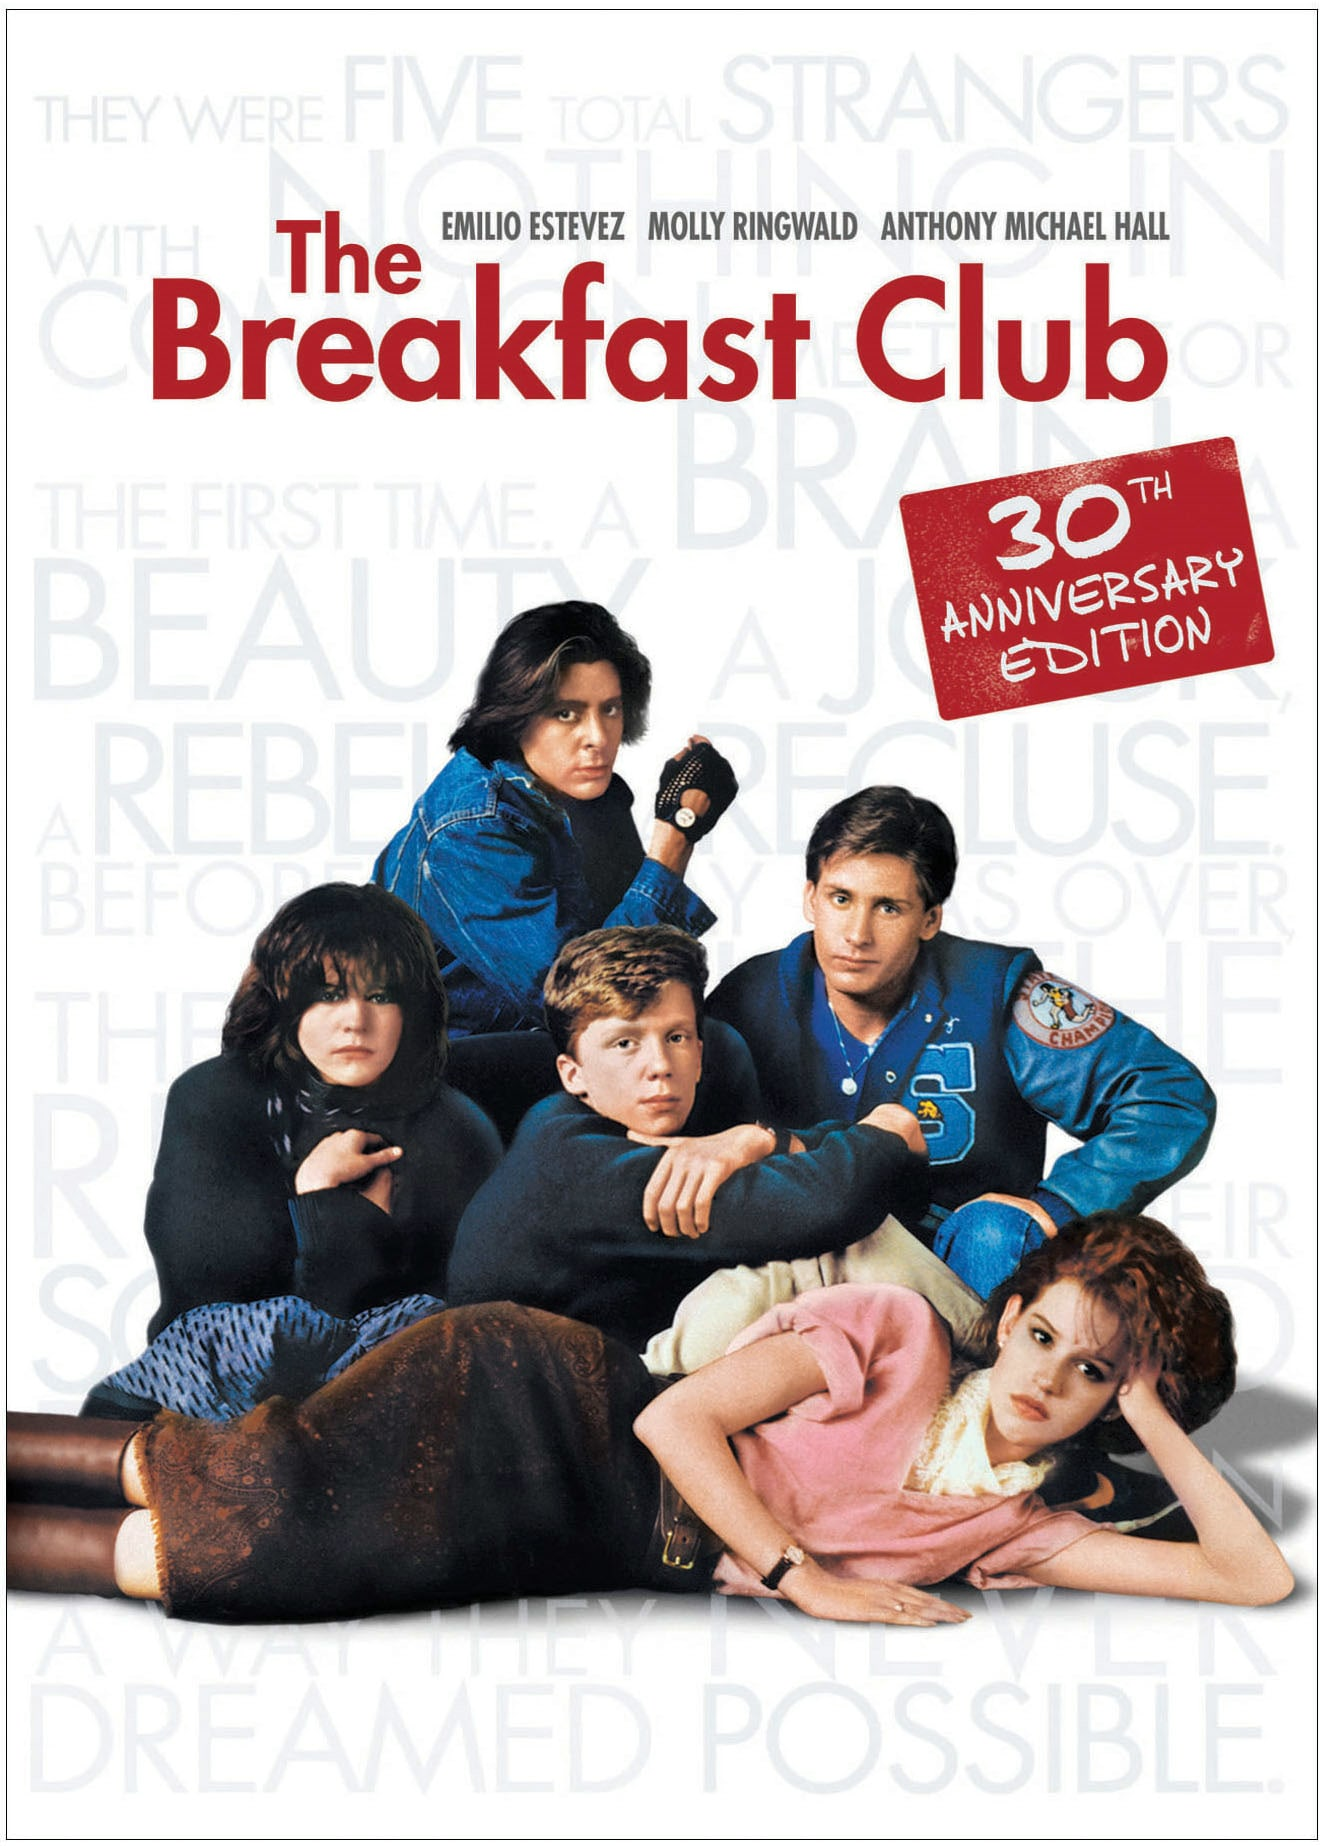 The Breakfast Club (30th Anniversary Edition) [DVD]